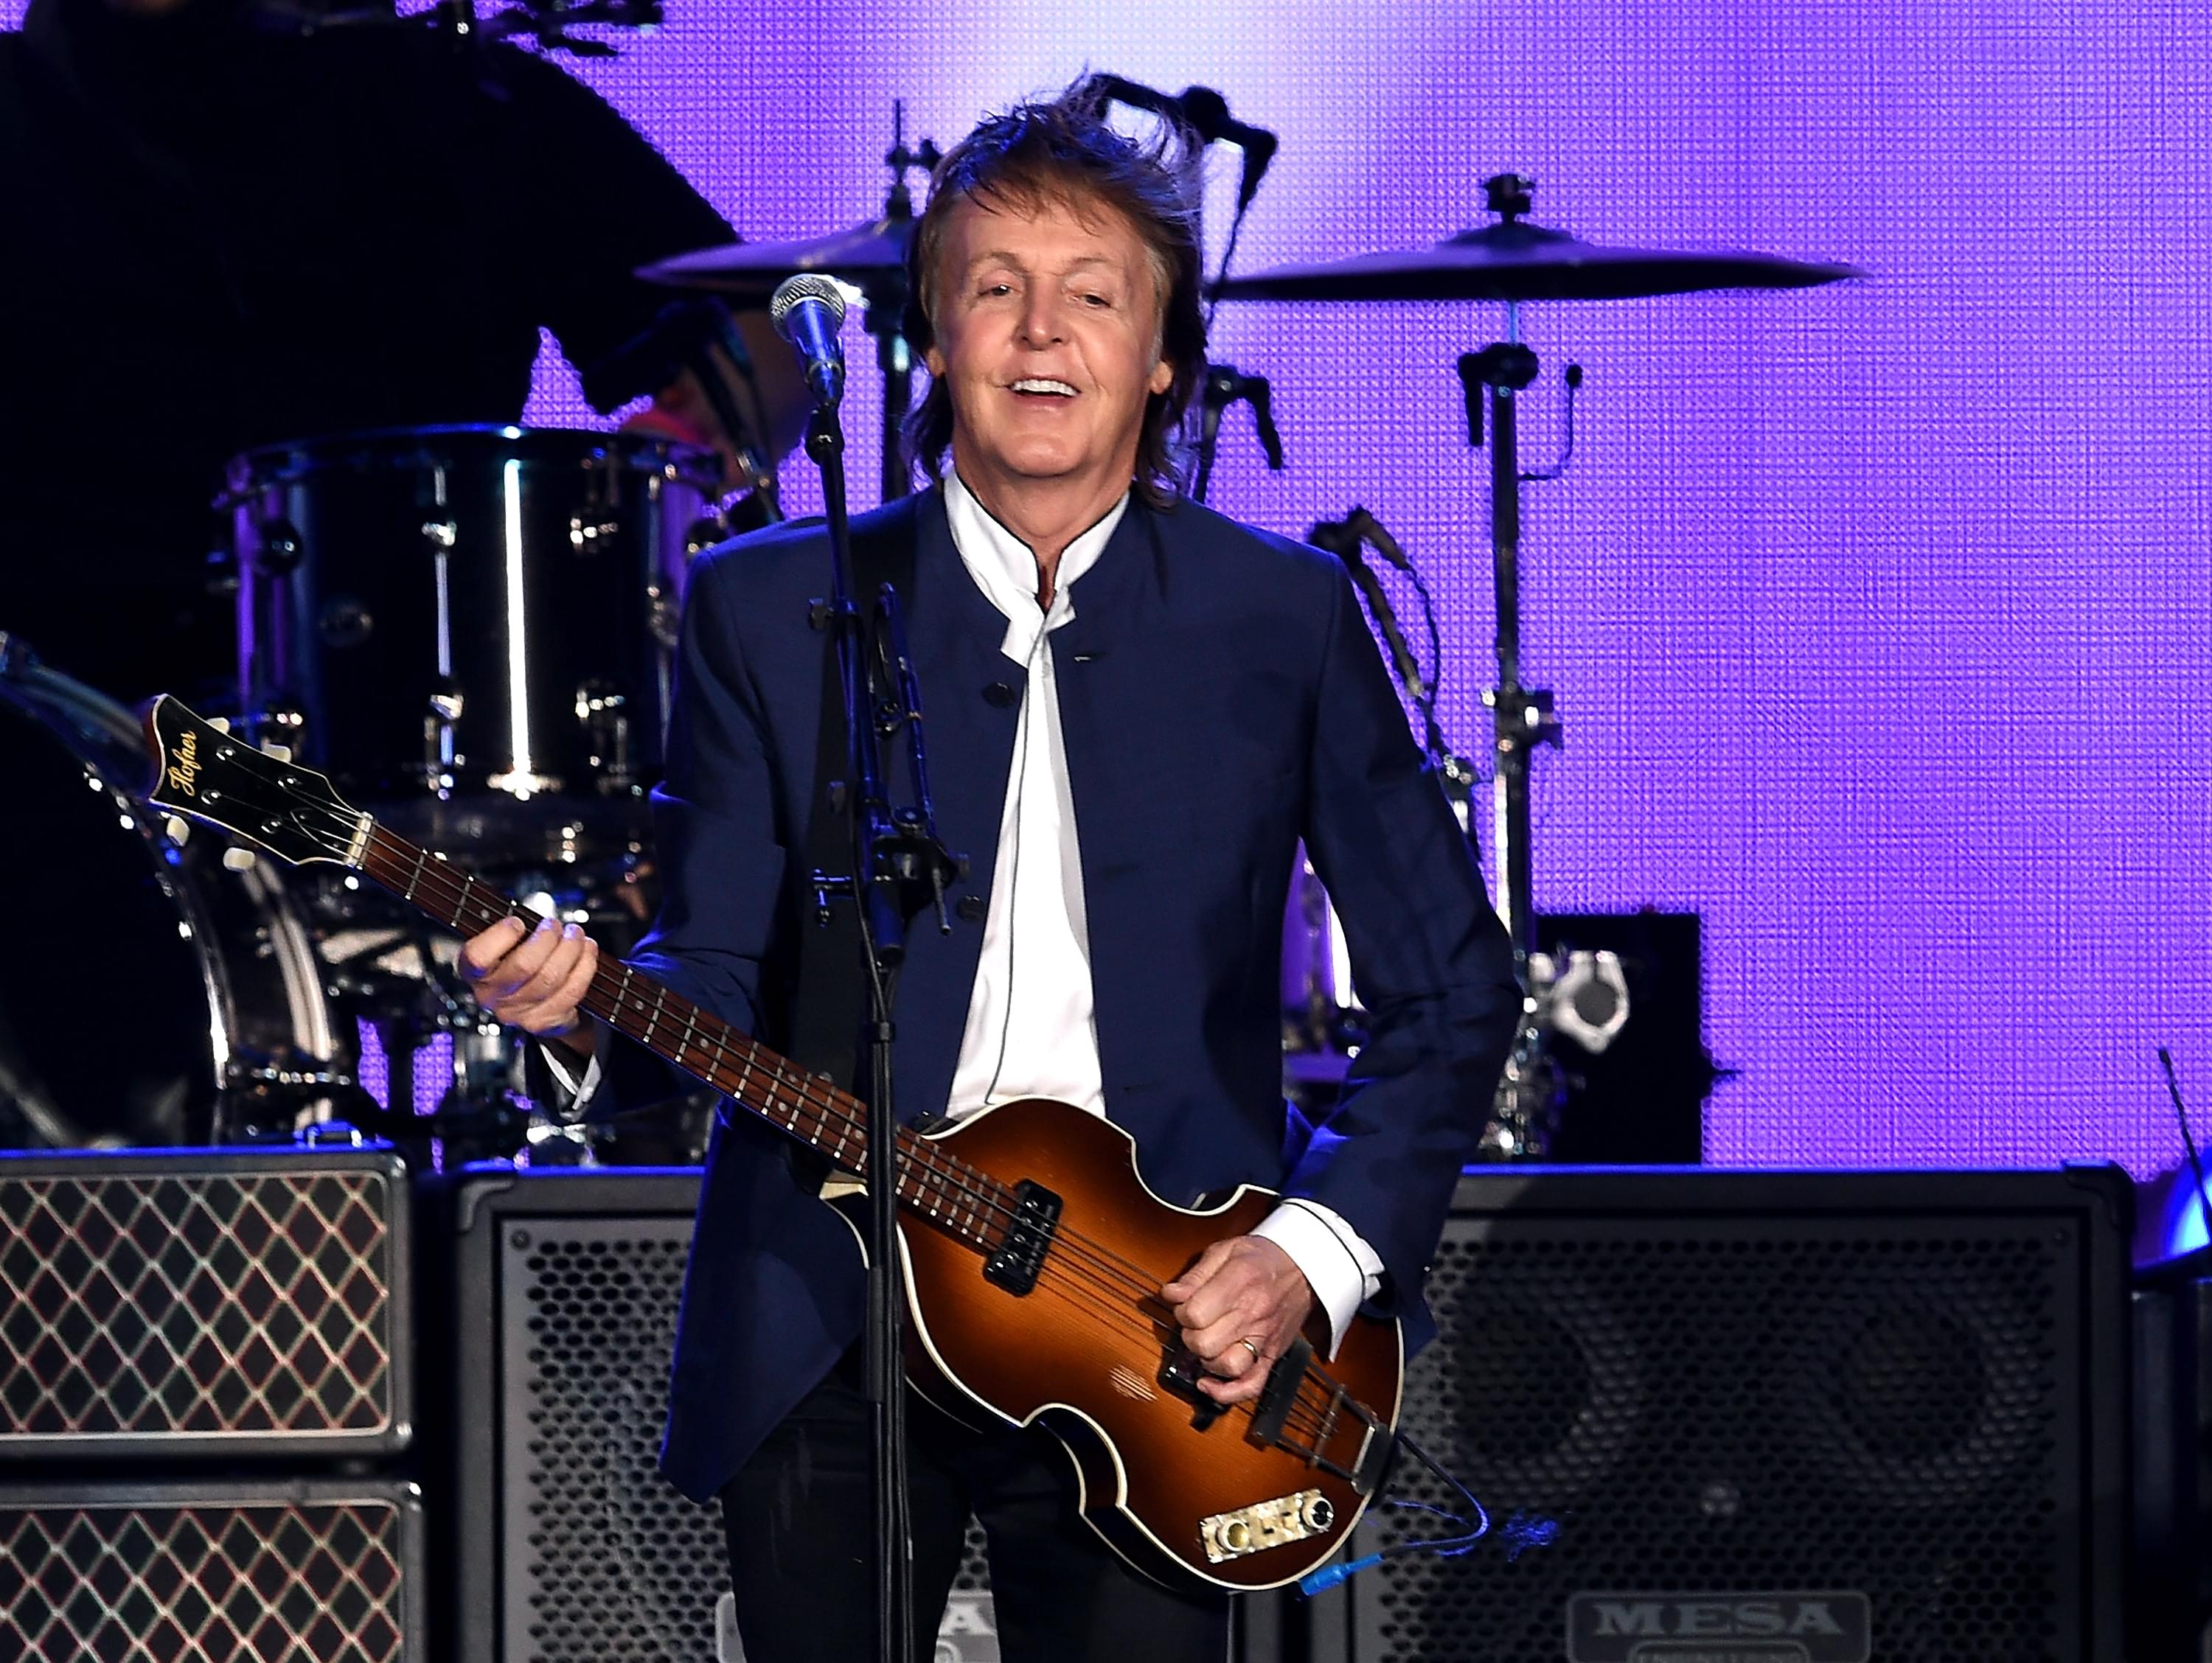 1972 Paul McCartney concert film coming to theaters